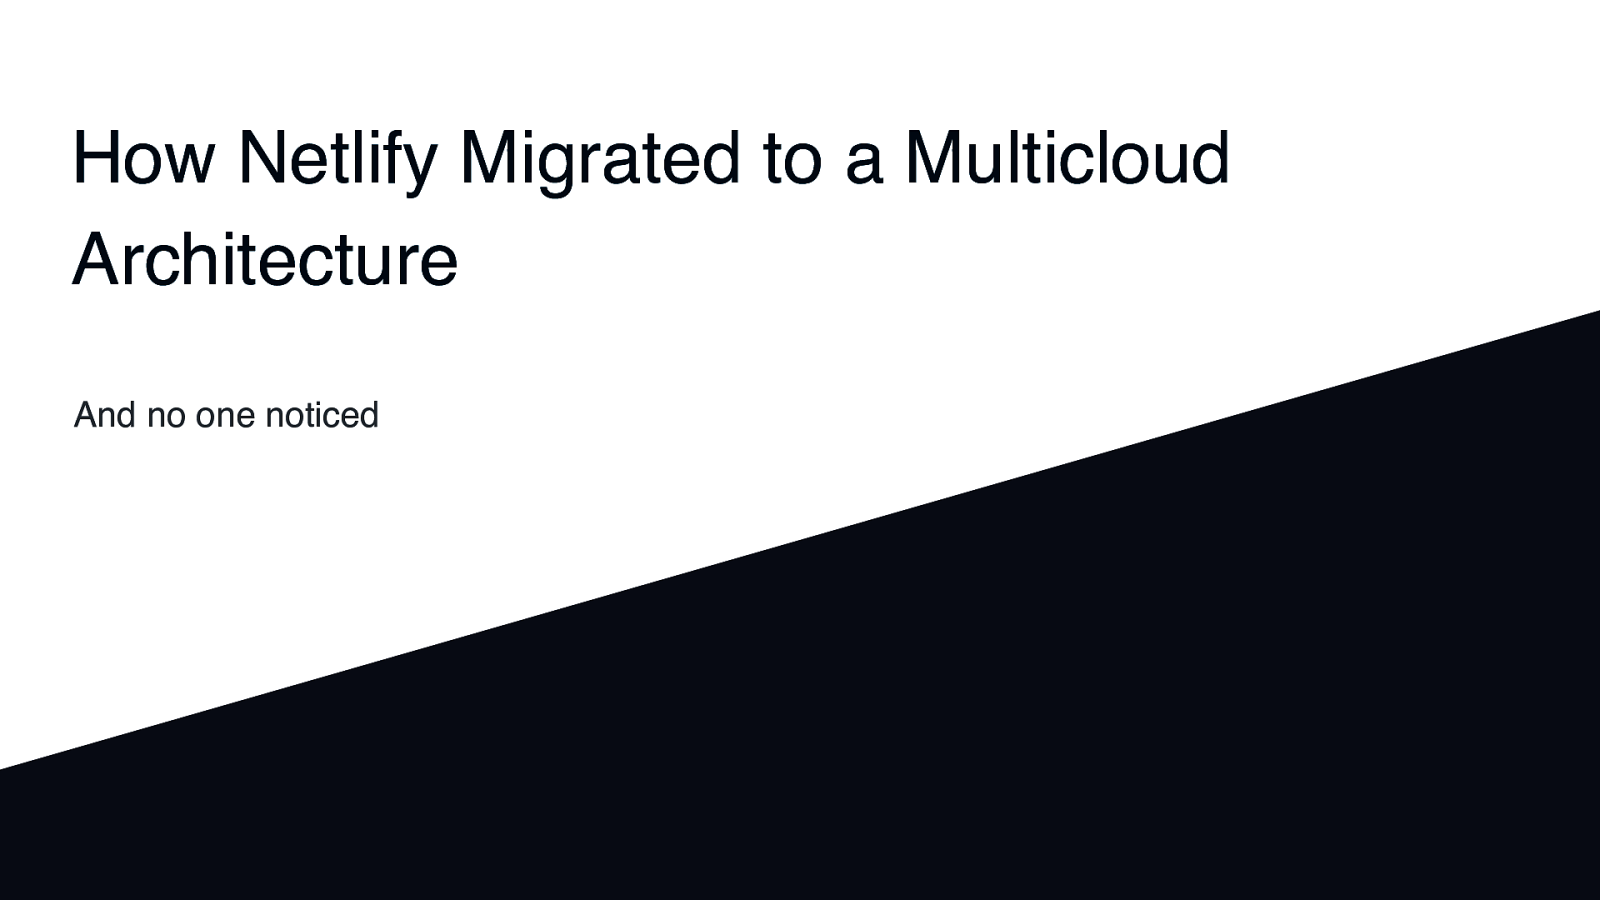 How Netlify migrated to multicloud while no one noticed